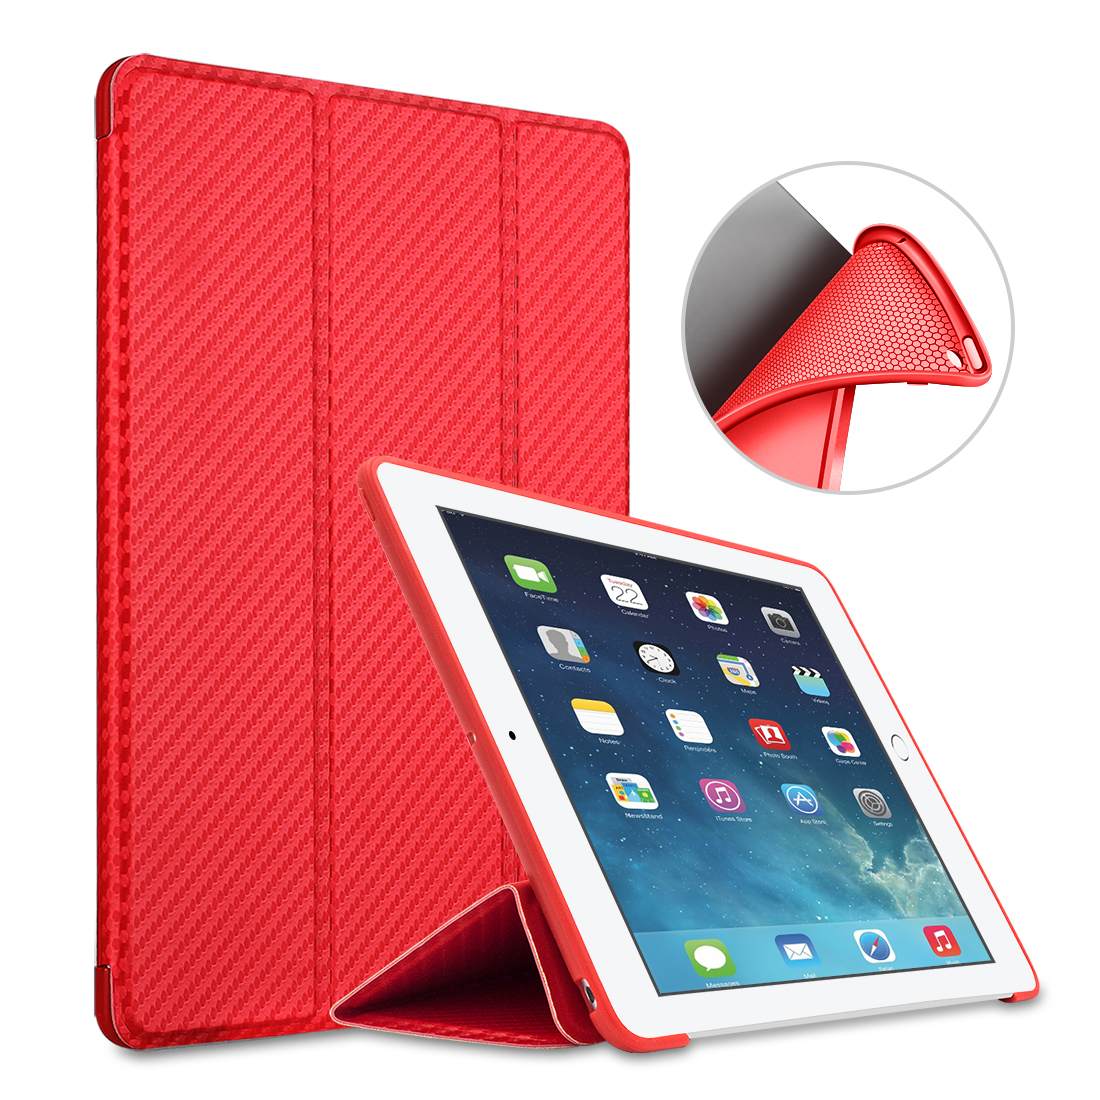 For iPad Pro 10.5 Case Magnetic Case Silicone Soft Back Trifold Stand PU Leather Cover for iPad Pro 10.5 inch 2017 Auto Wake soft silicone tpu translucent back cover for ipad mini 4 mini4 trifold stand smart auto on off premium pu leather slim fit case